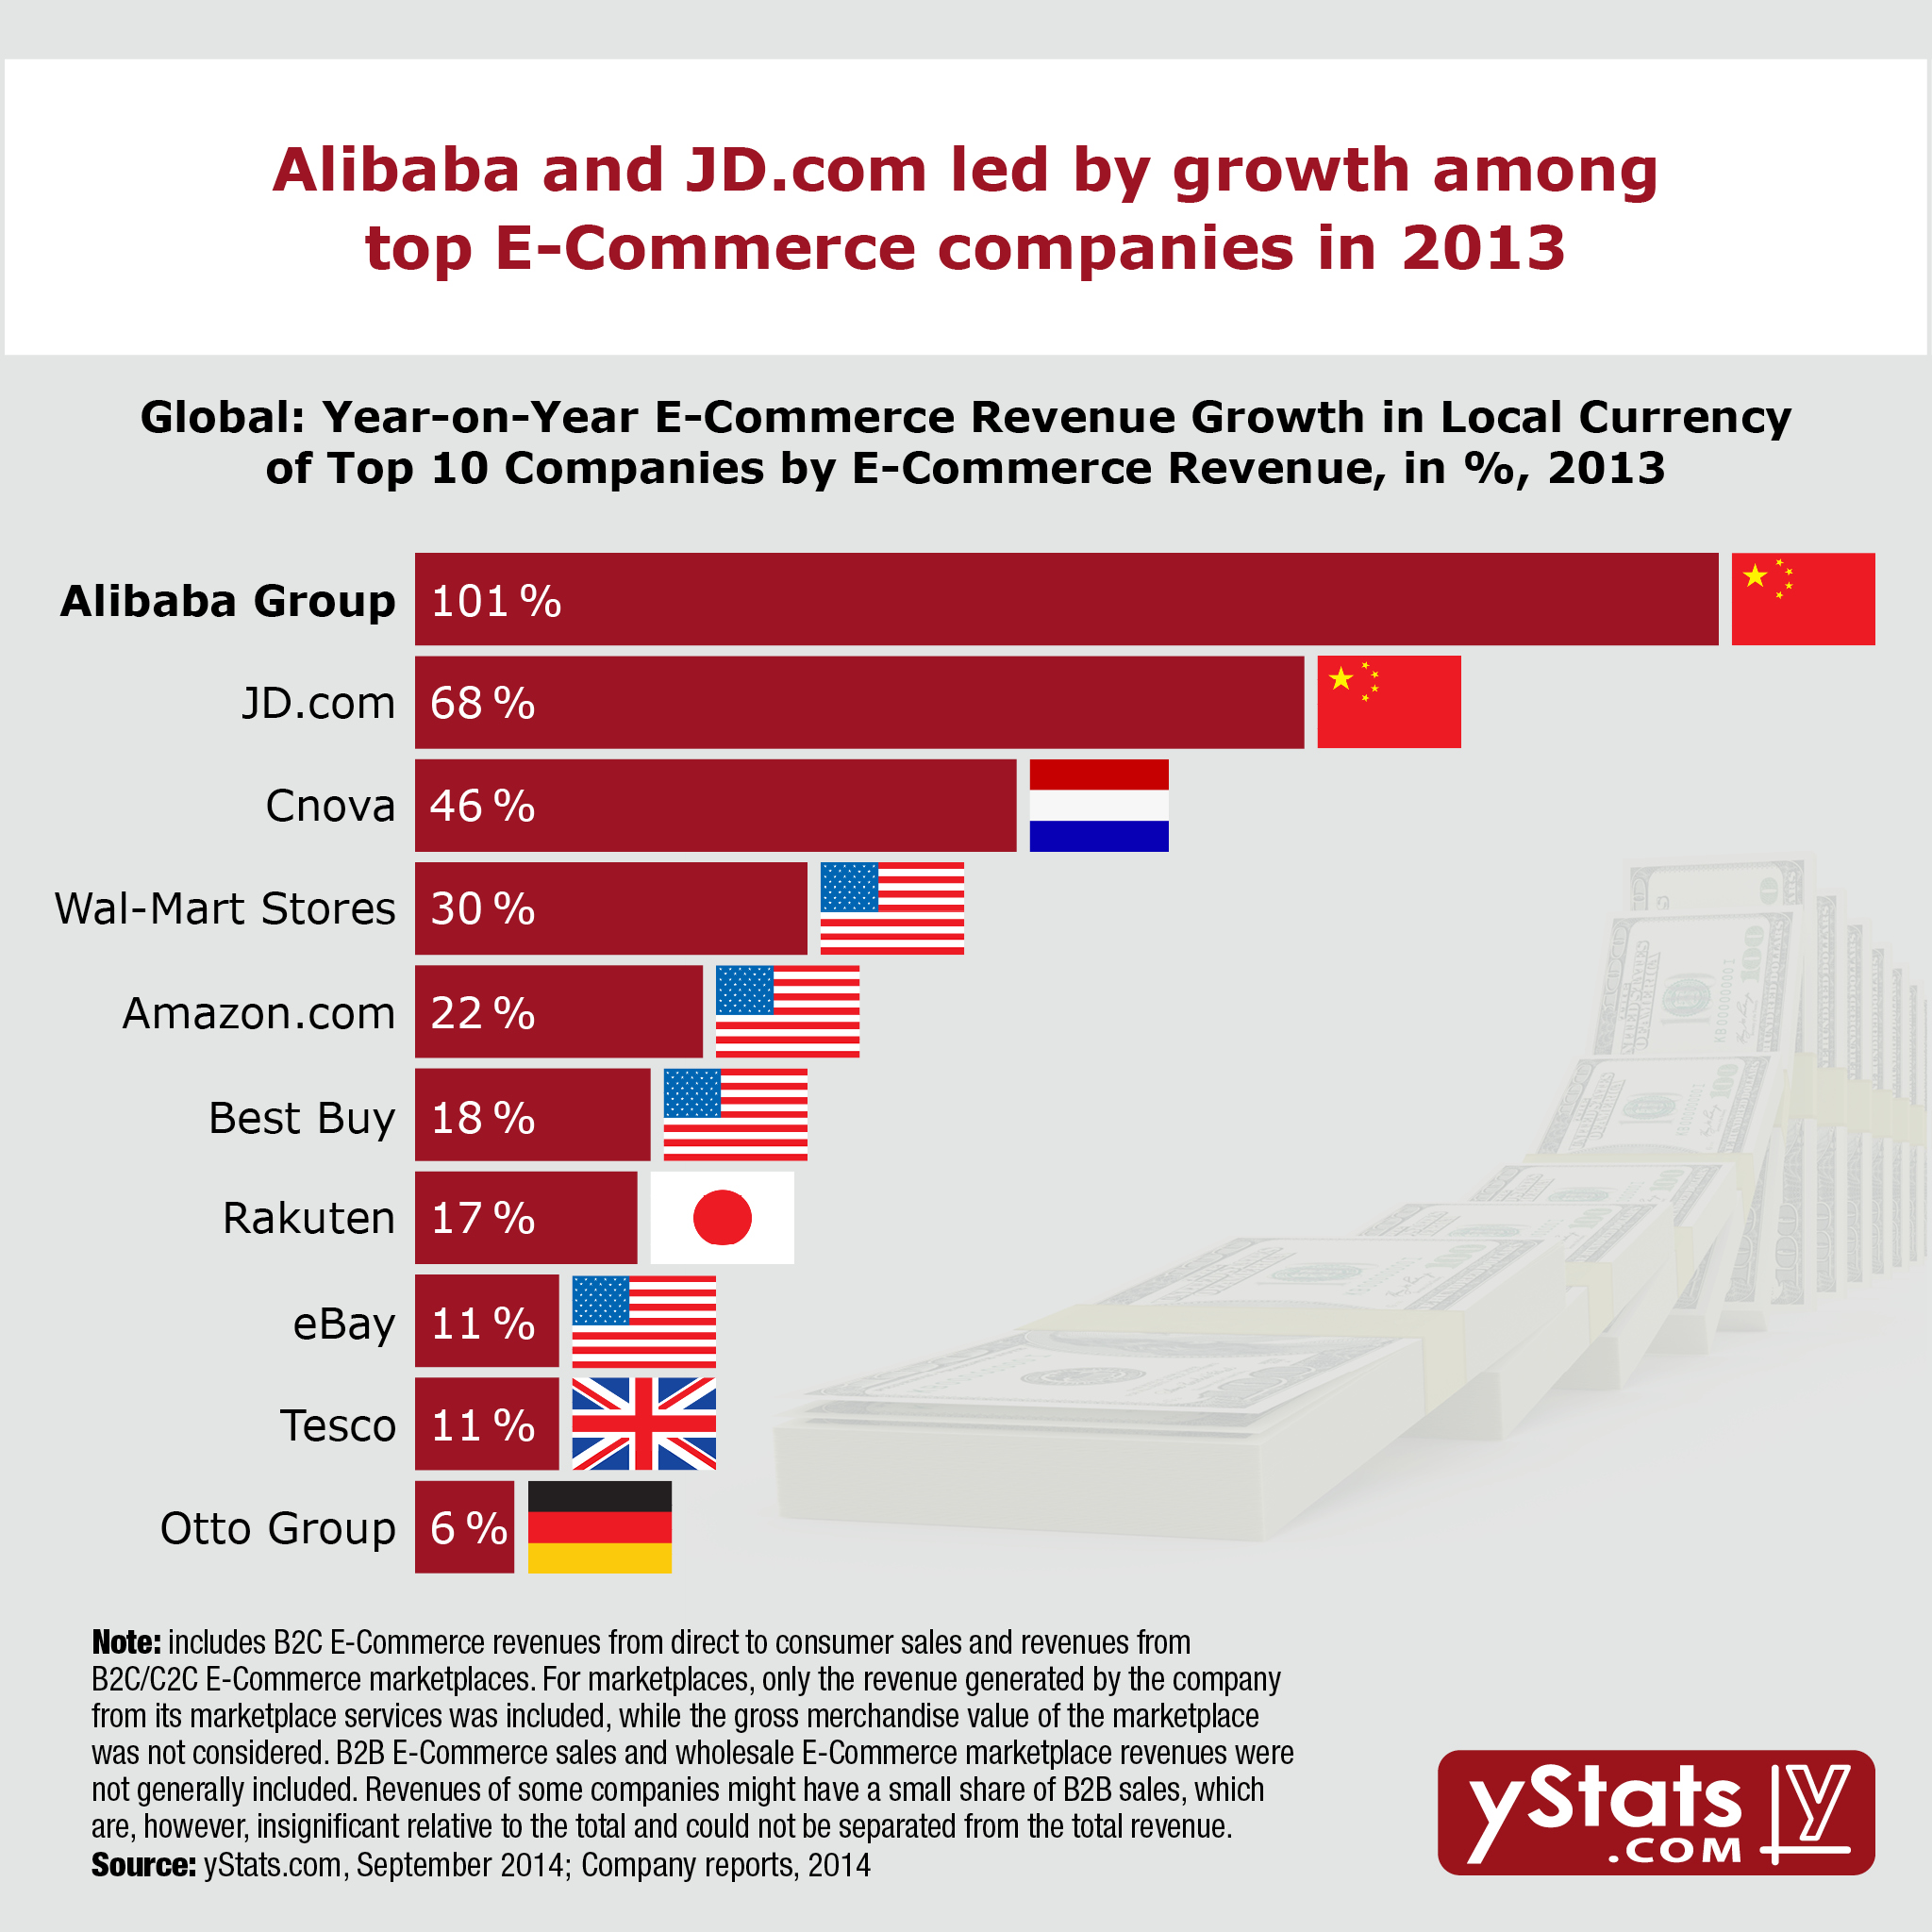 yStats.com Infographic The World's Leading E-Commerce Companies 2014 2